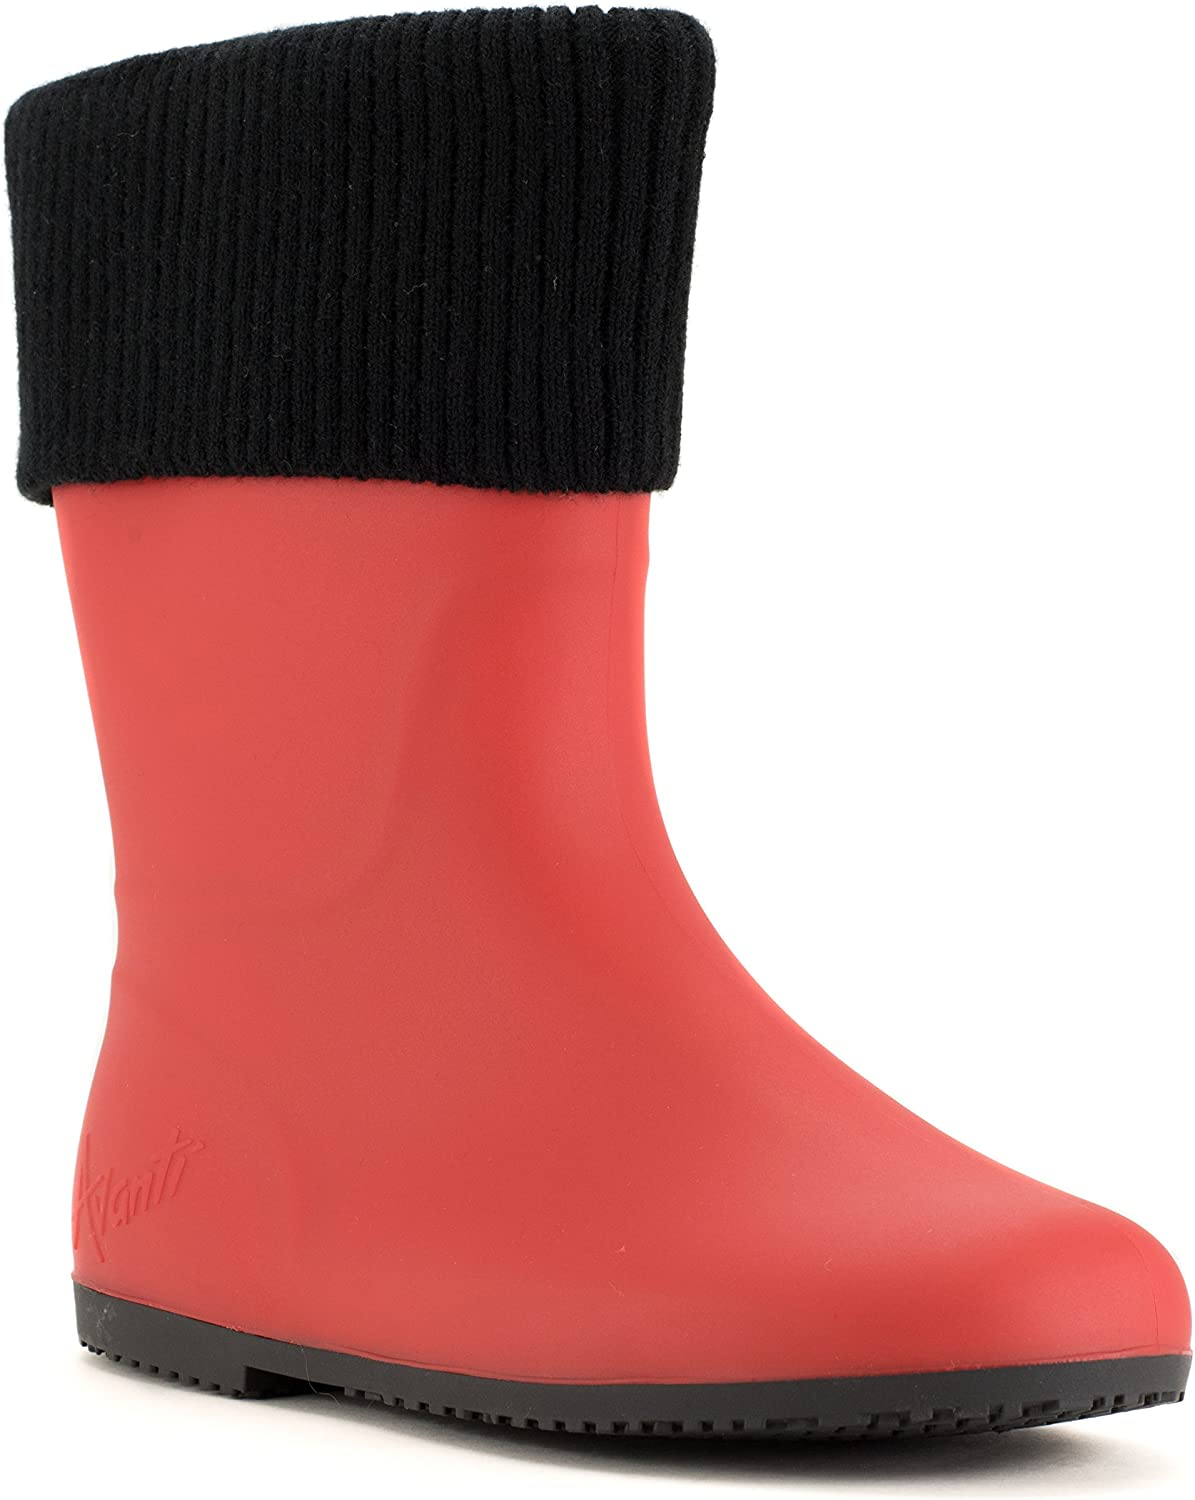 Avanti Storm Rain Boot Waterproof with Removable Knitted Cuff Monogram-Able Foldable